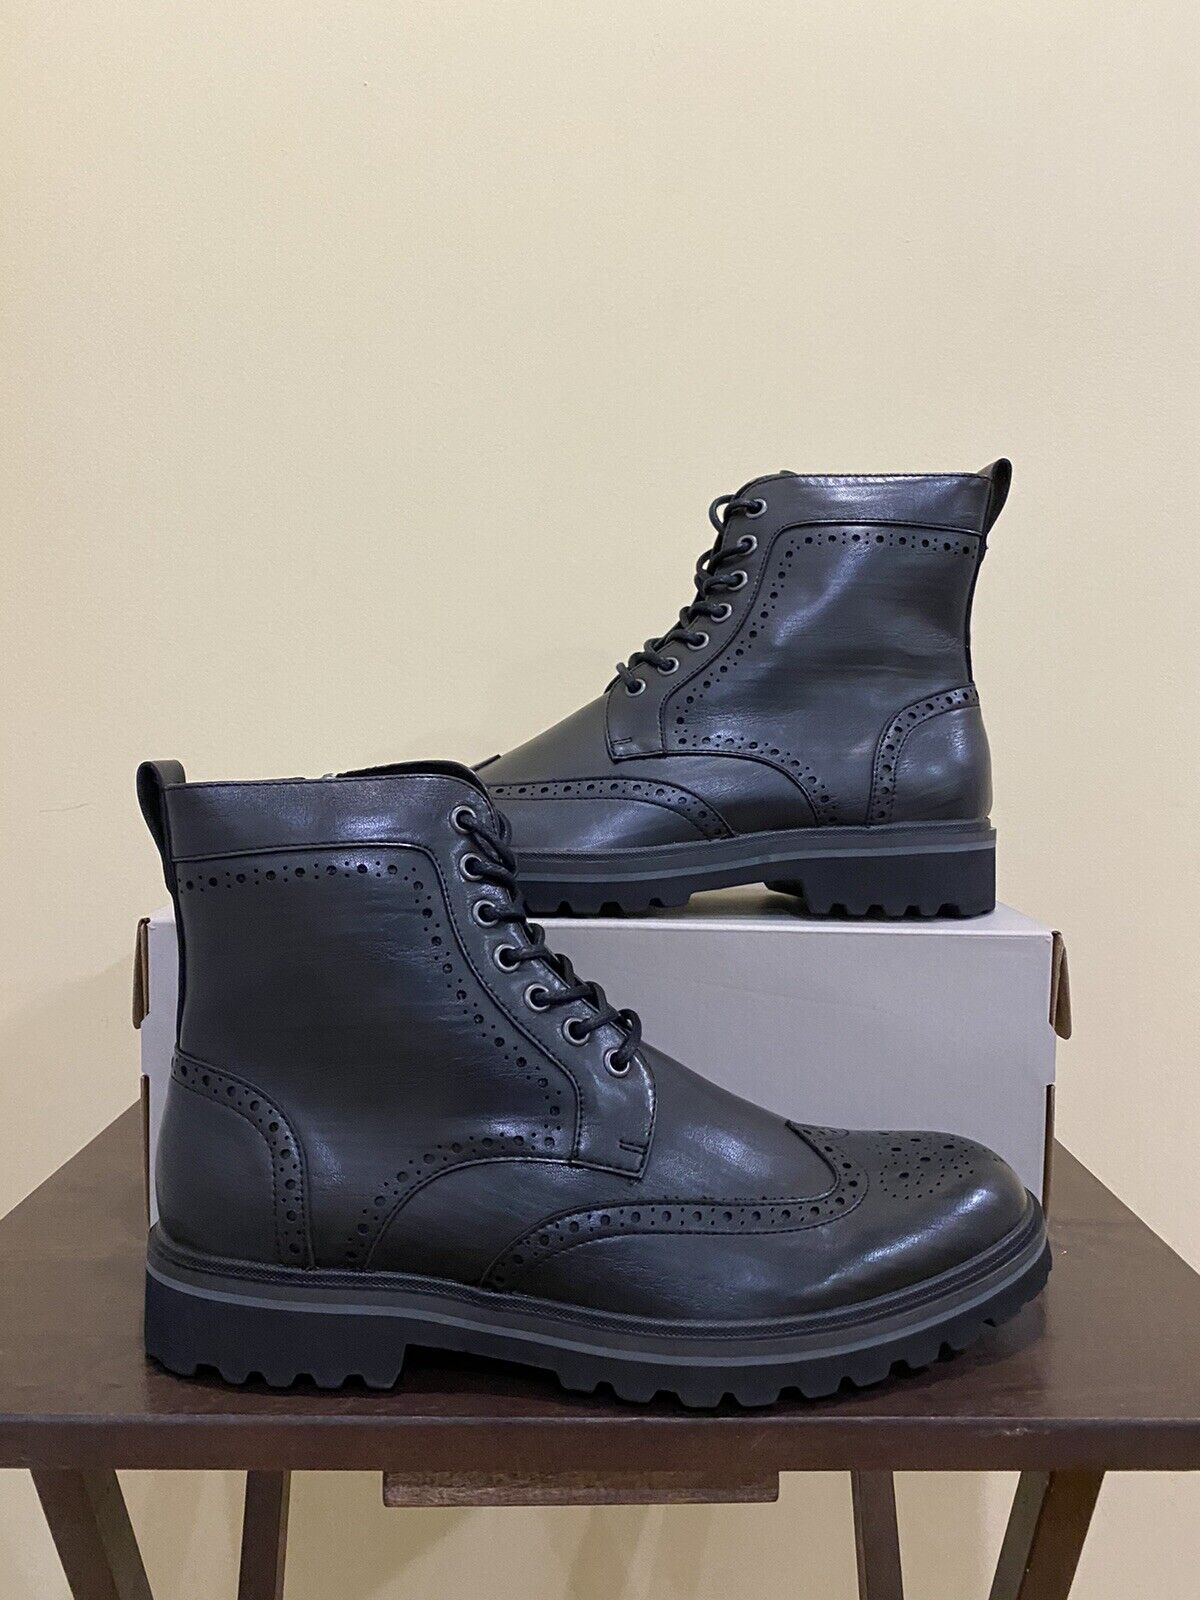 Kenneth Cole Reaction Klay Lug WT Boot Black Size 10 New RMF0042AM